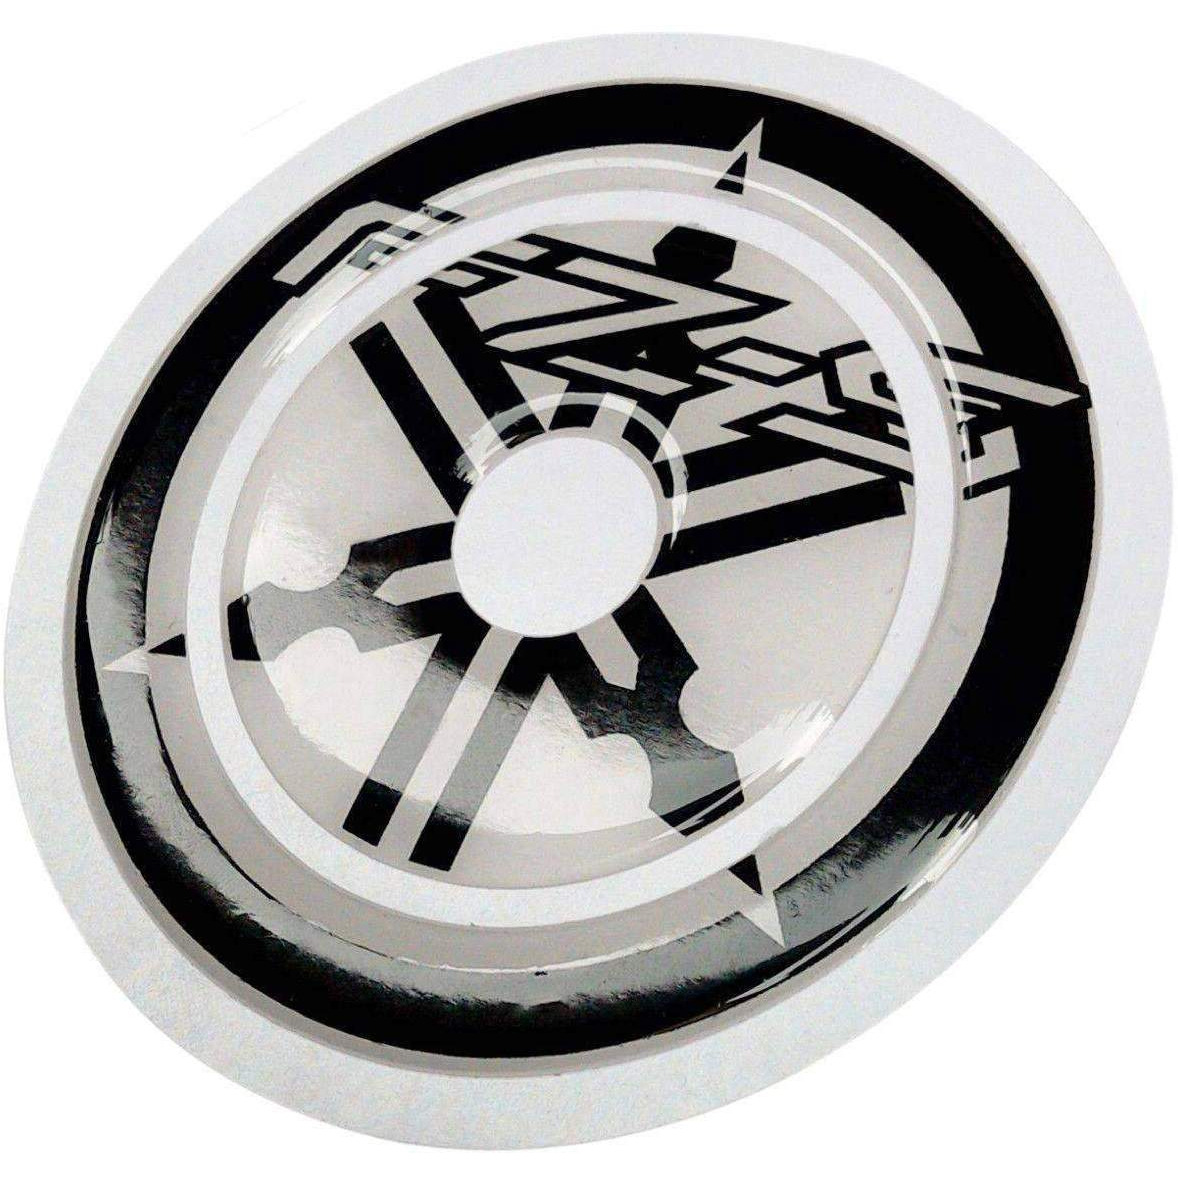 Petrol Cap Protector Sticker Fits Yamaha Motorcycles